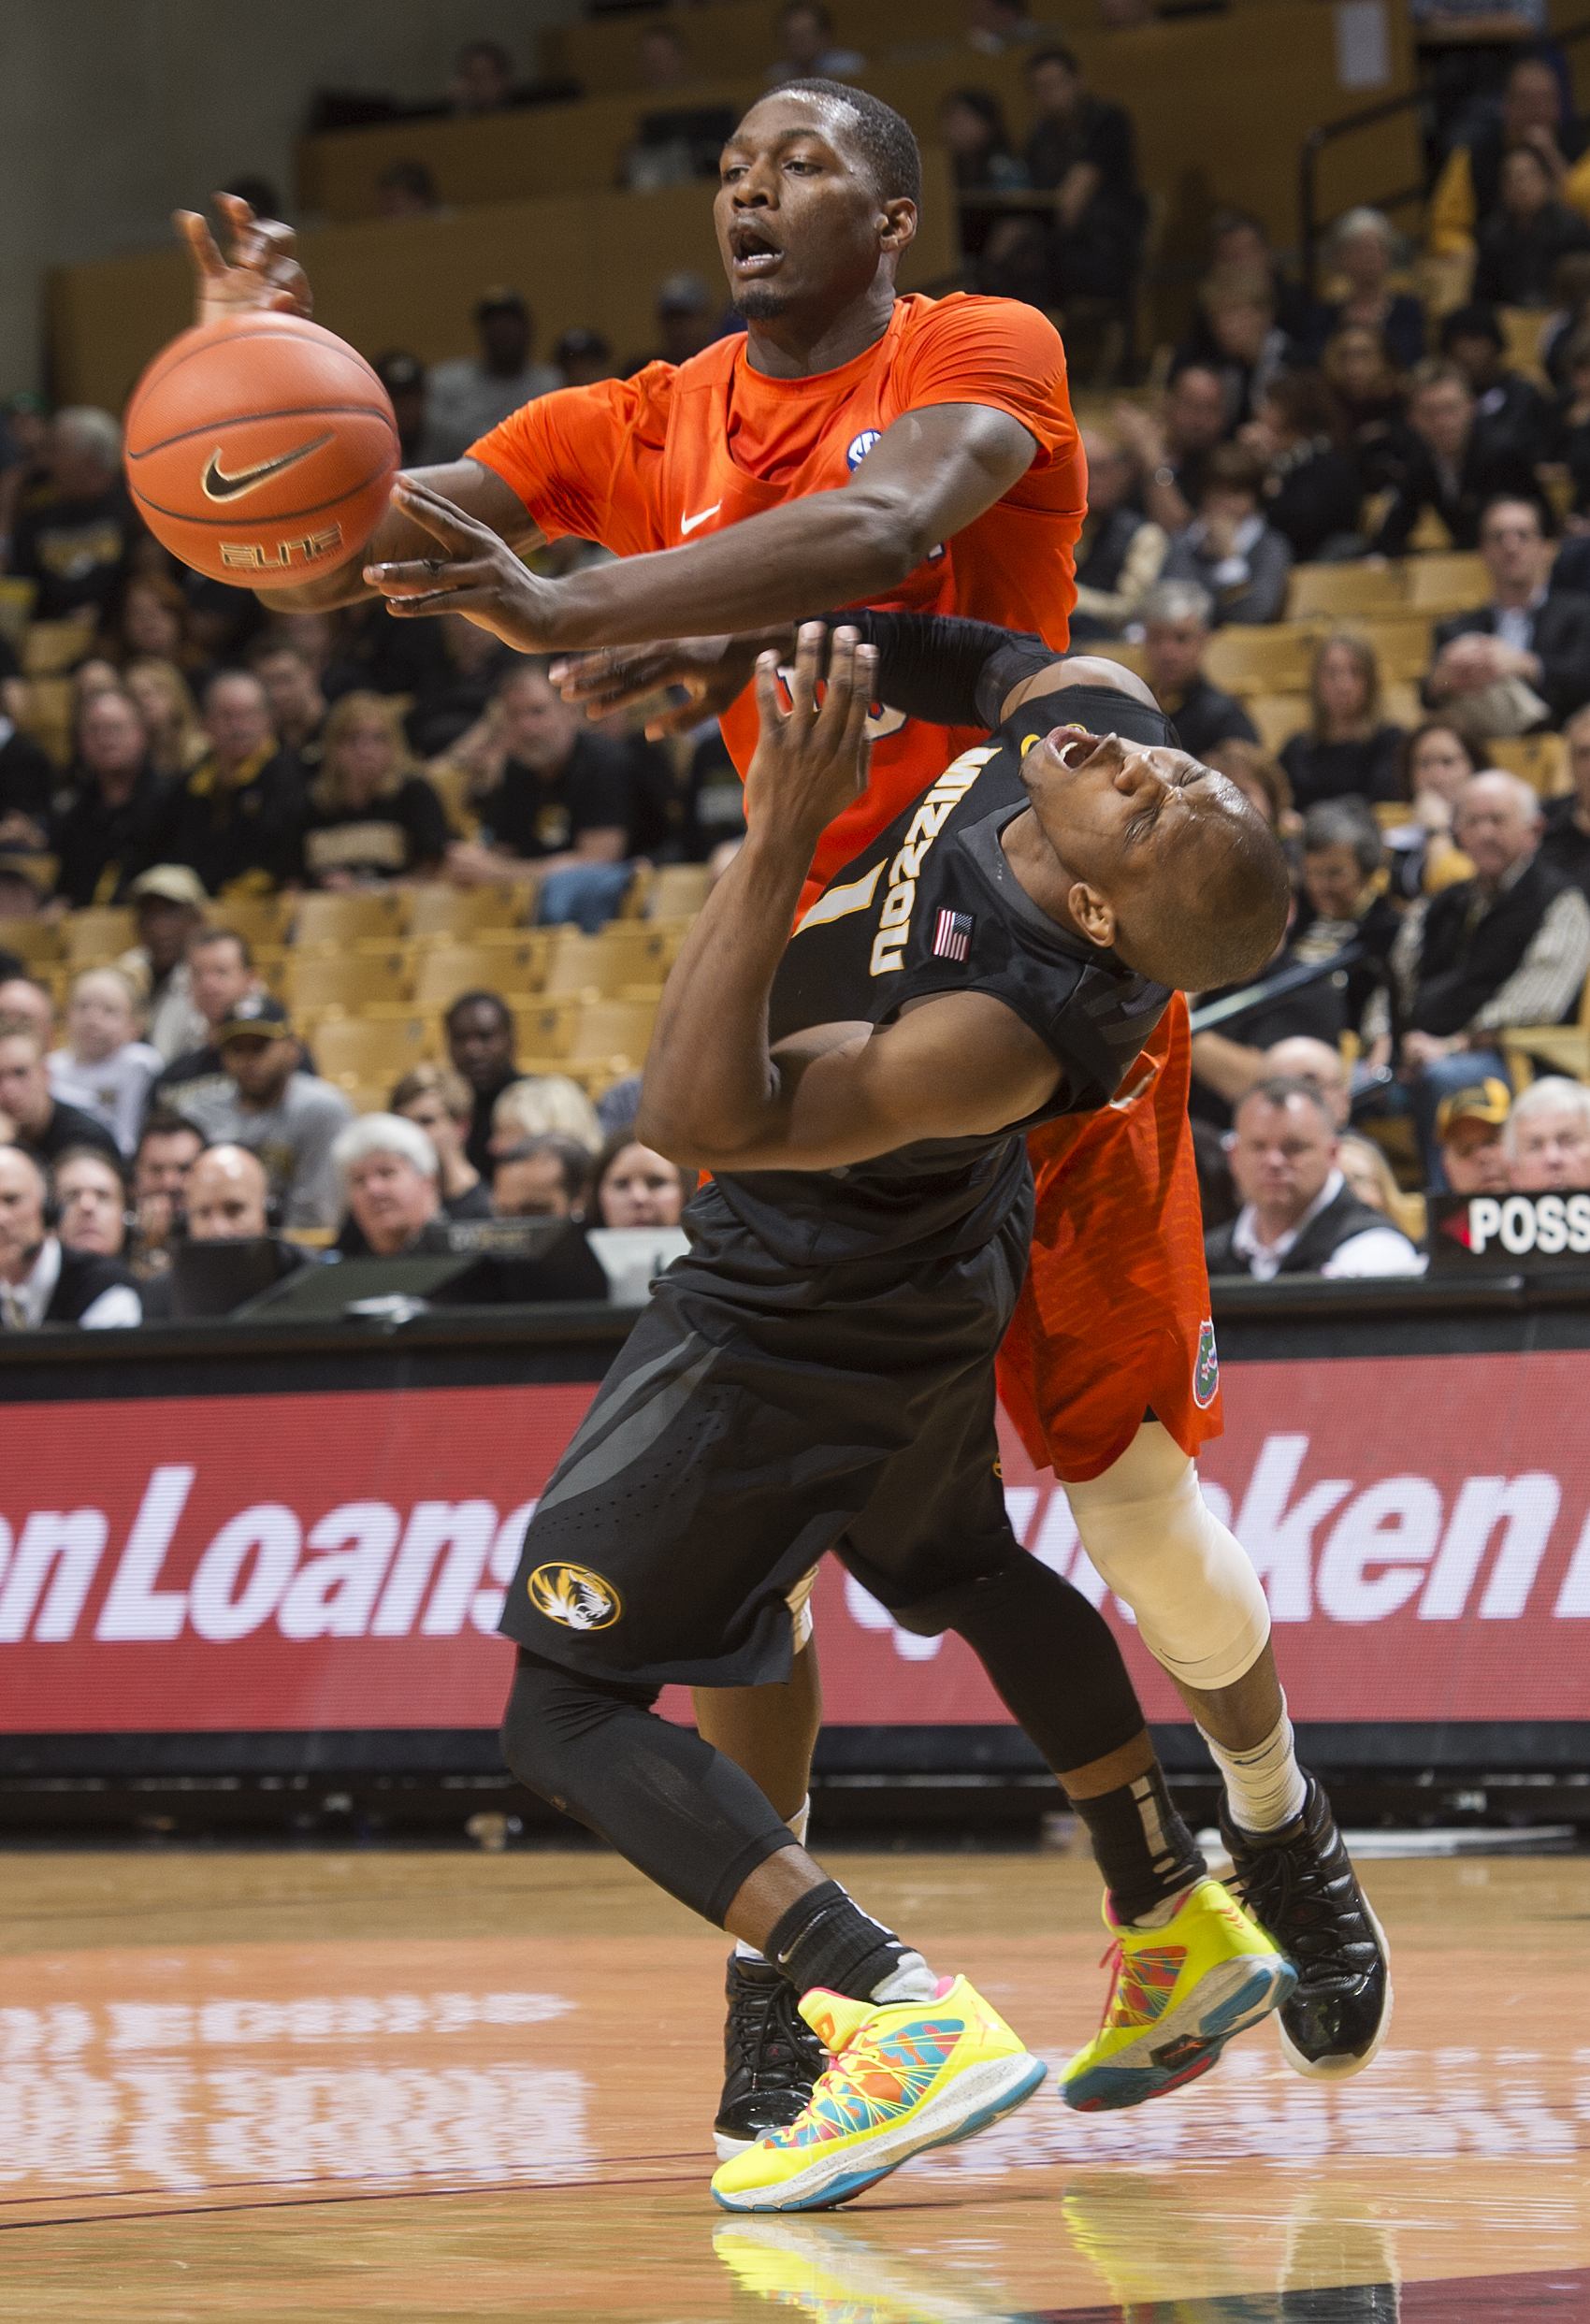 Florida's Dorian Finney-Smith, top, fouls Missouri's Terrence Phillips as he passes the ball during the second half of an NCAA college basketball game Saturday, March 5, 2016, in Columbia, Mo. Florida won 82-72. (AP Photo/L.G. Patterson)